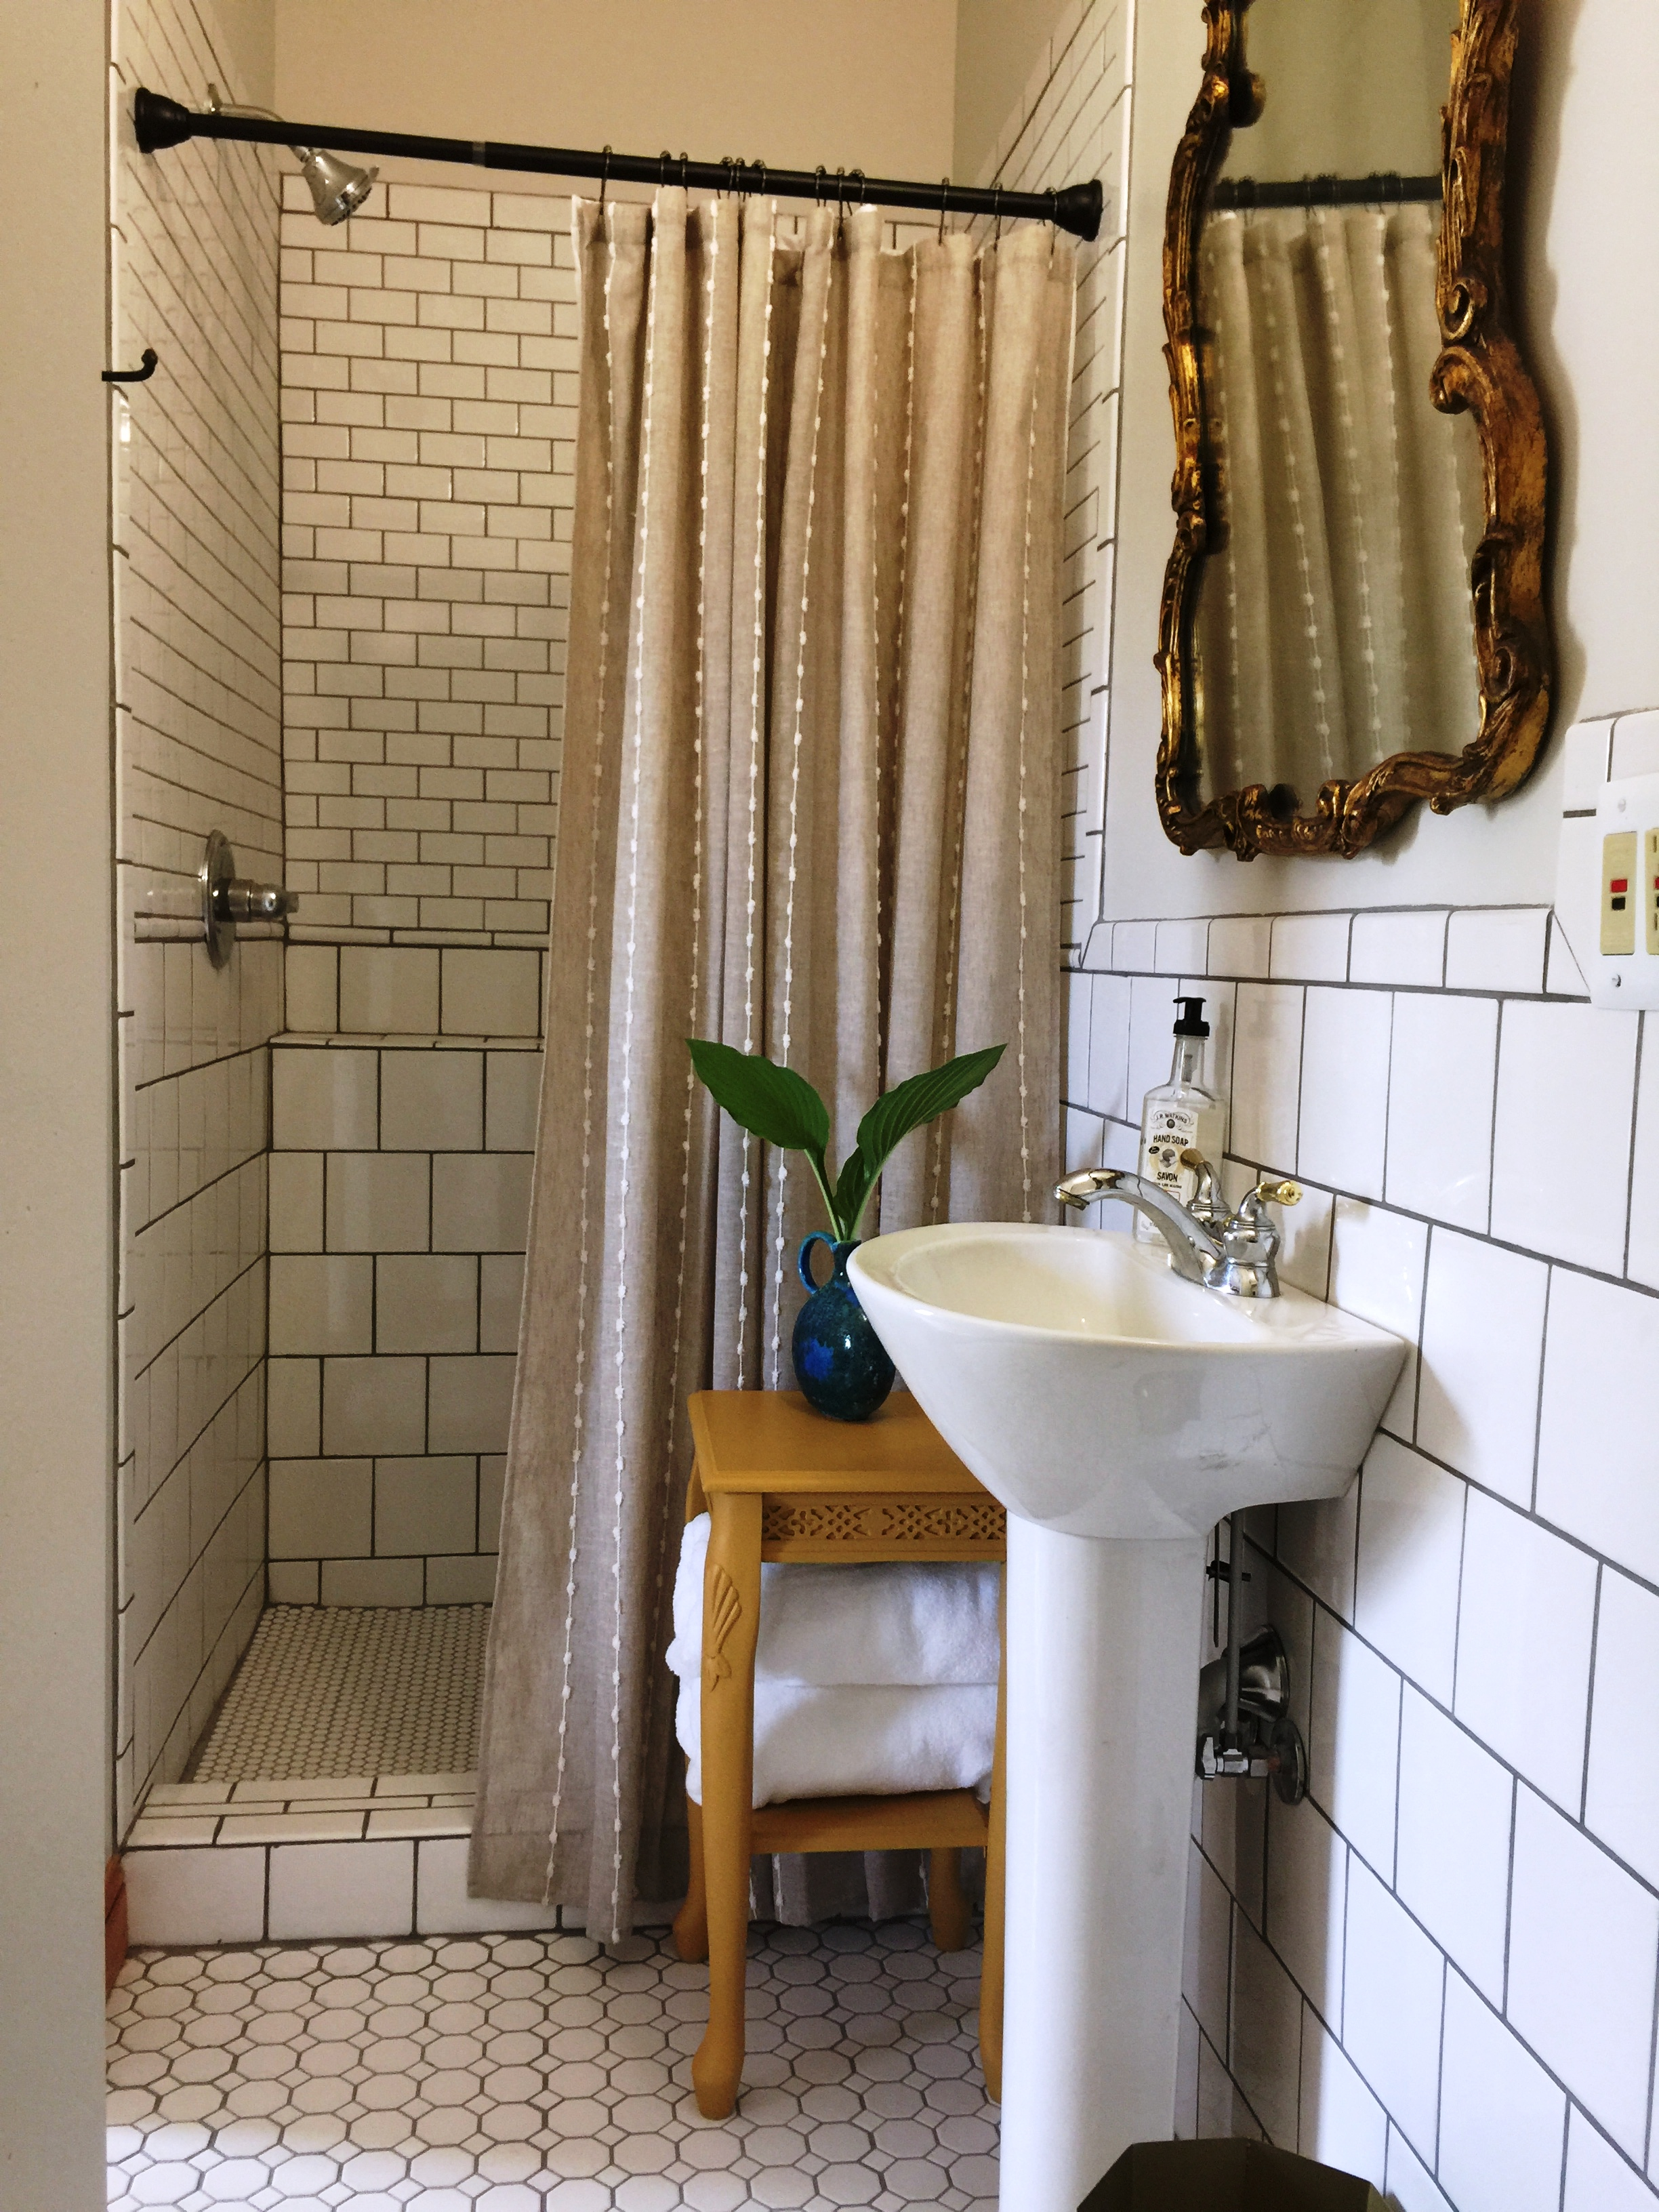 Sorry for the bad Iphone pic — but I had to show you this space. This used to be an over sized tub in the middle of the room. Now it has a wall and a usable shower — go figure! Outdated Victorian Inn turned into a  fabulous vacation rental.